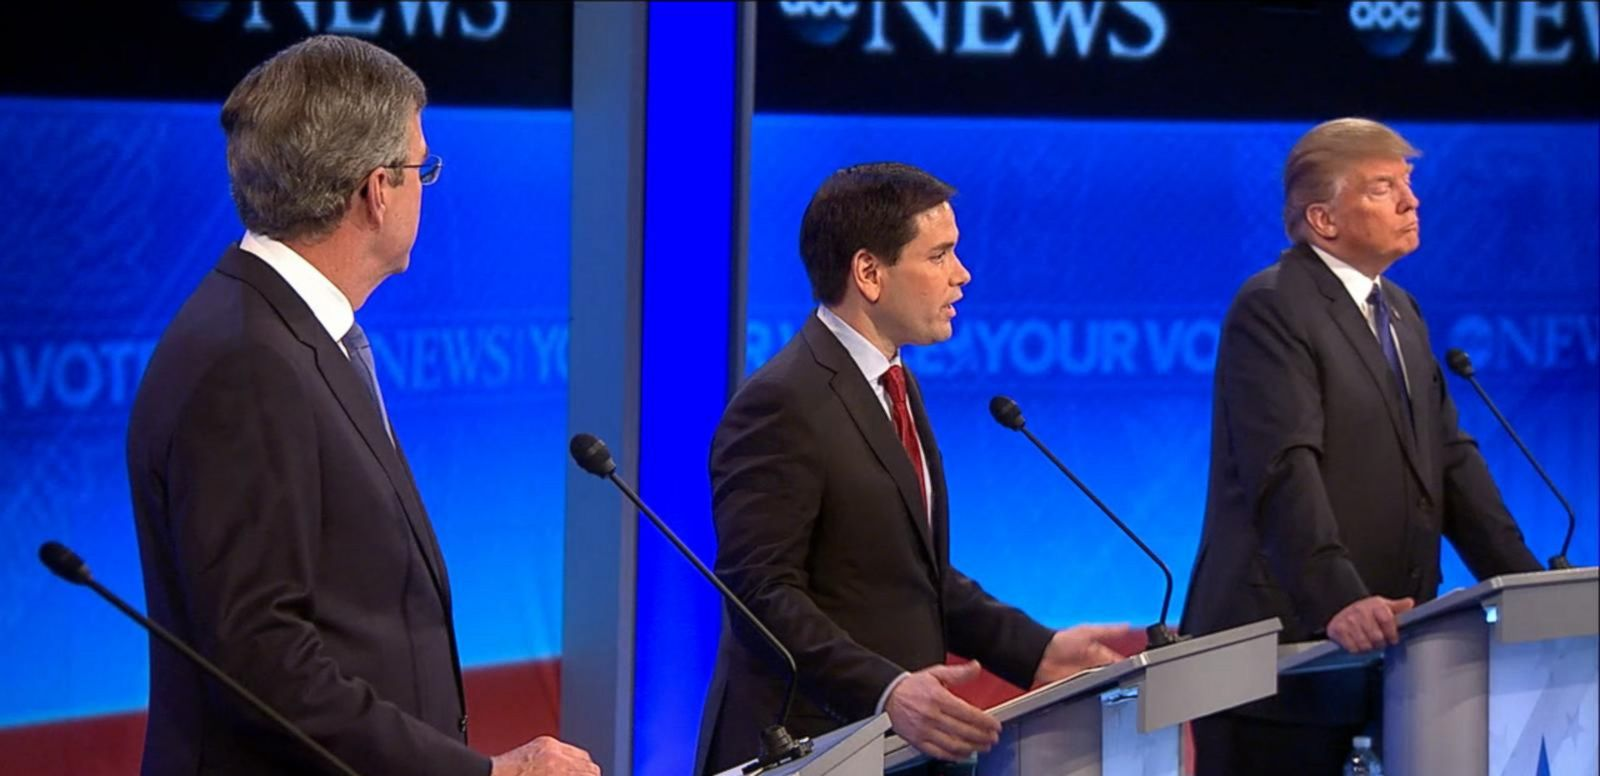 VIDEO: Republicans Address the Topic of Social Issues During the GOP Debate